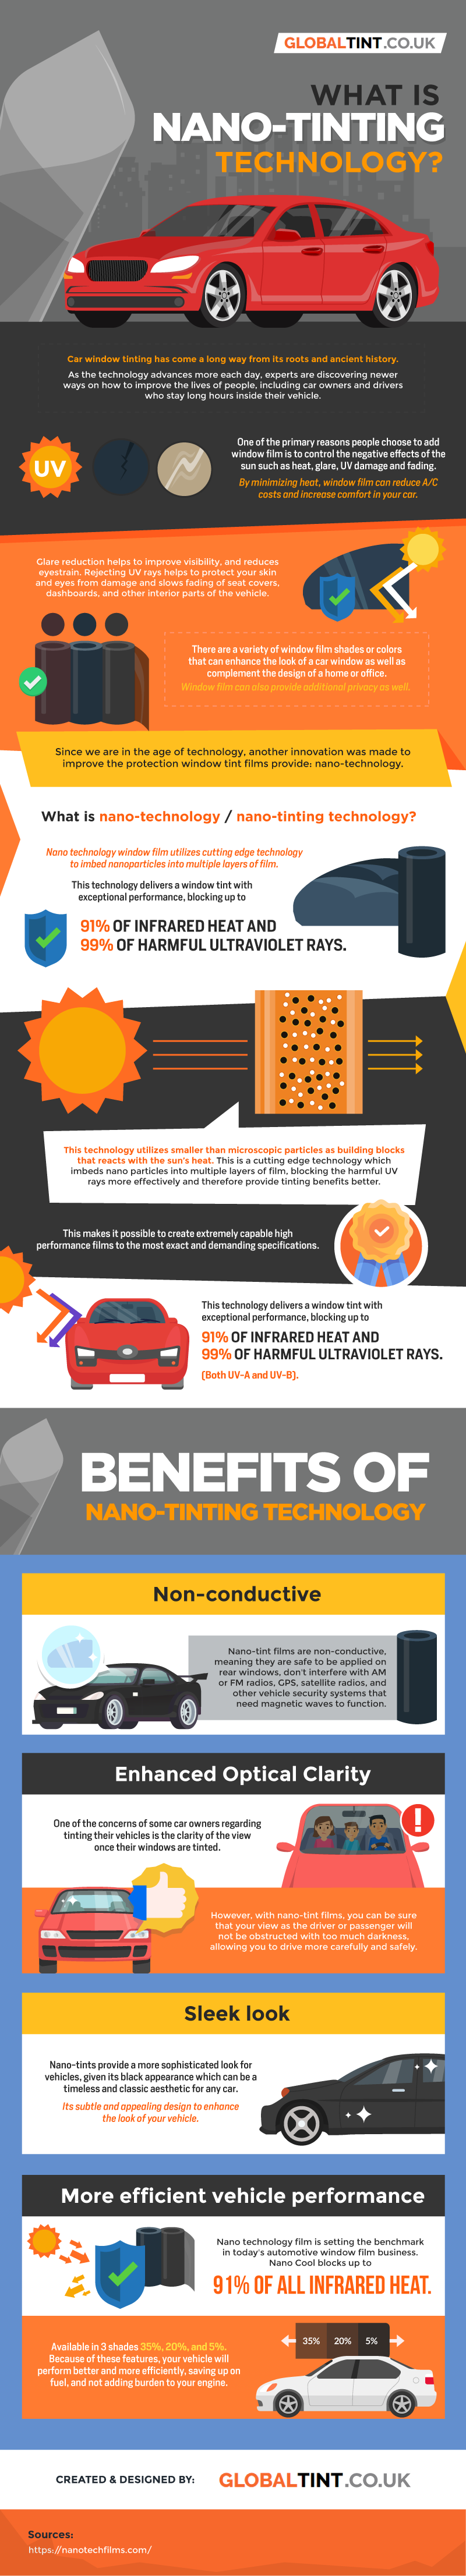 What is technology for nano-tinting? #infographic